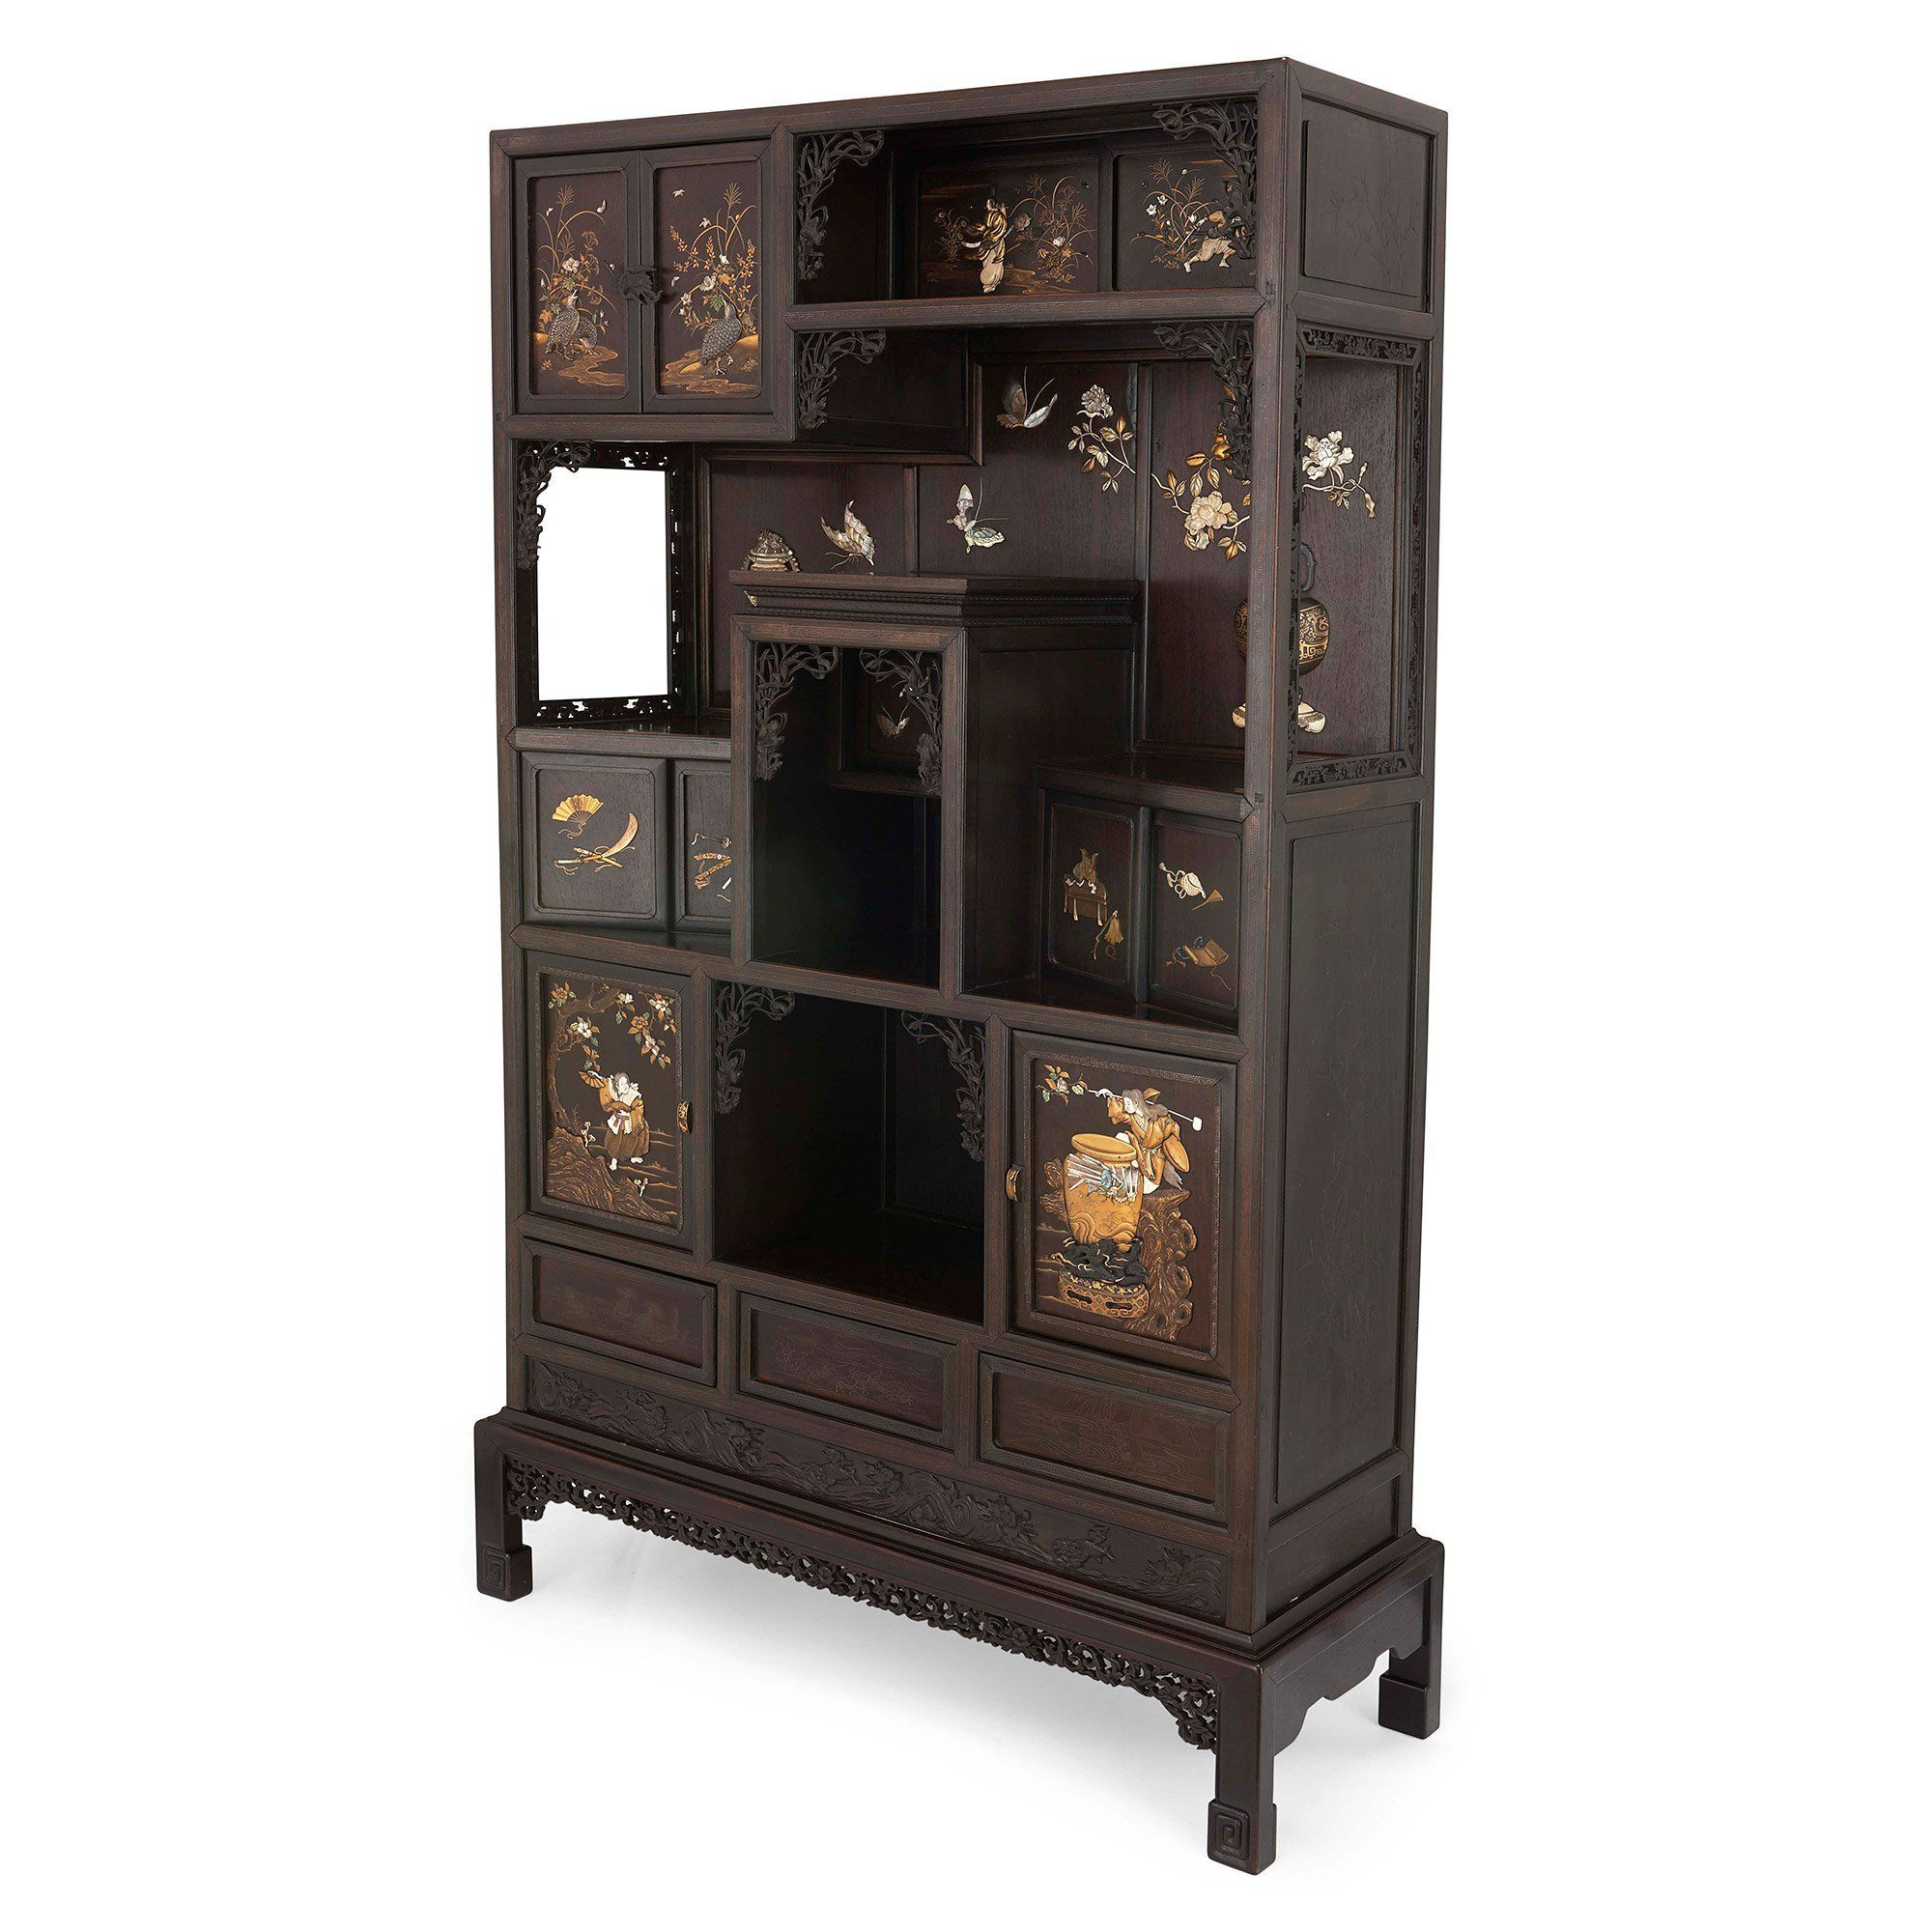 Anese Ivory And Mother Of Pearl Inlaid Hardwood Cabinet